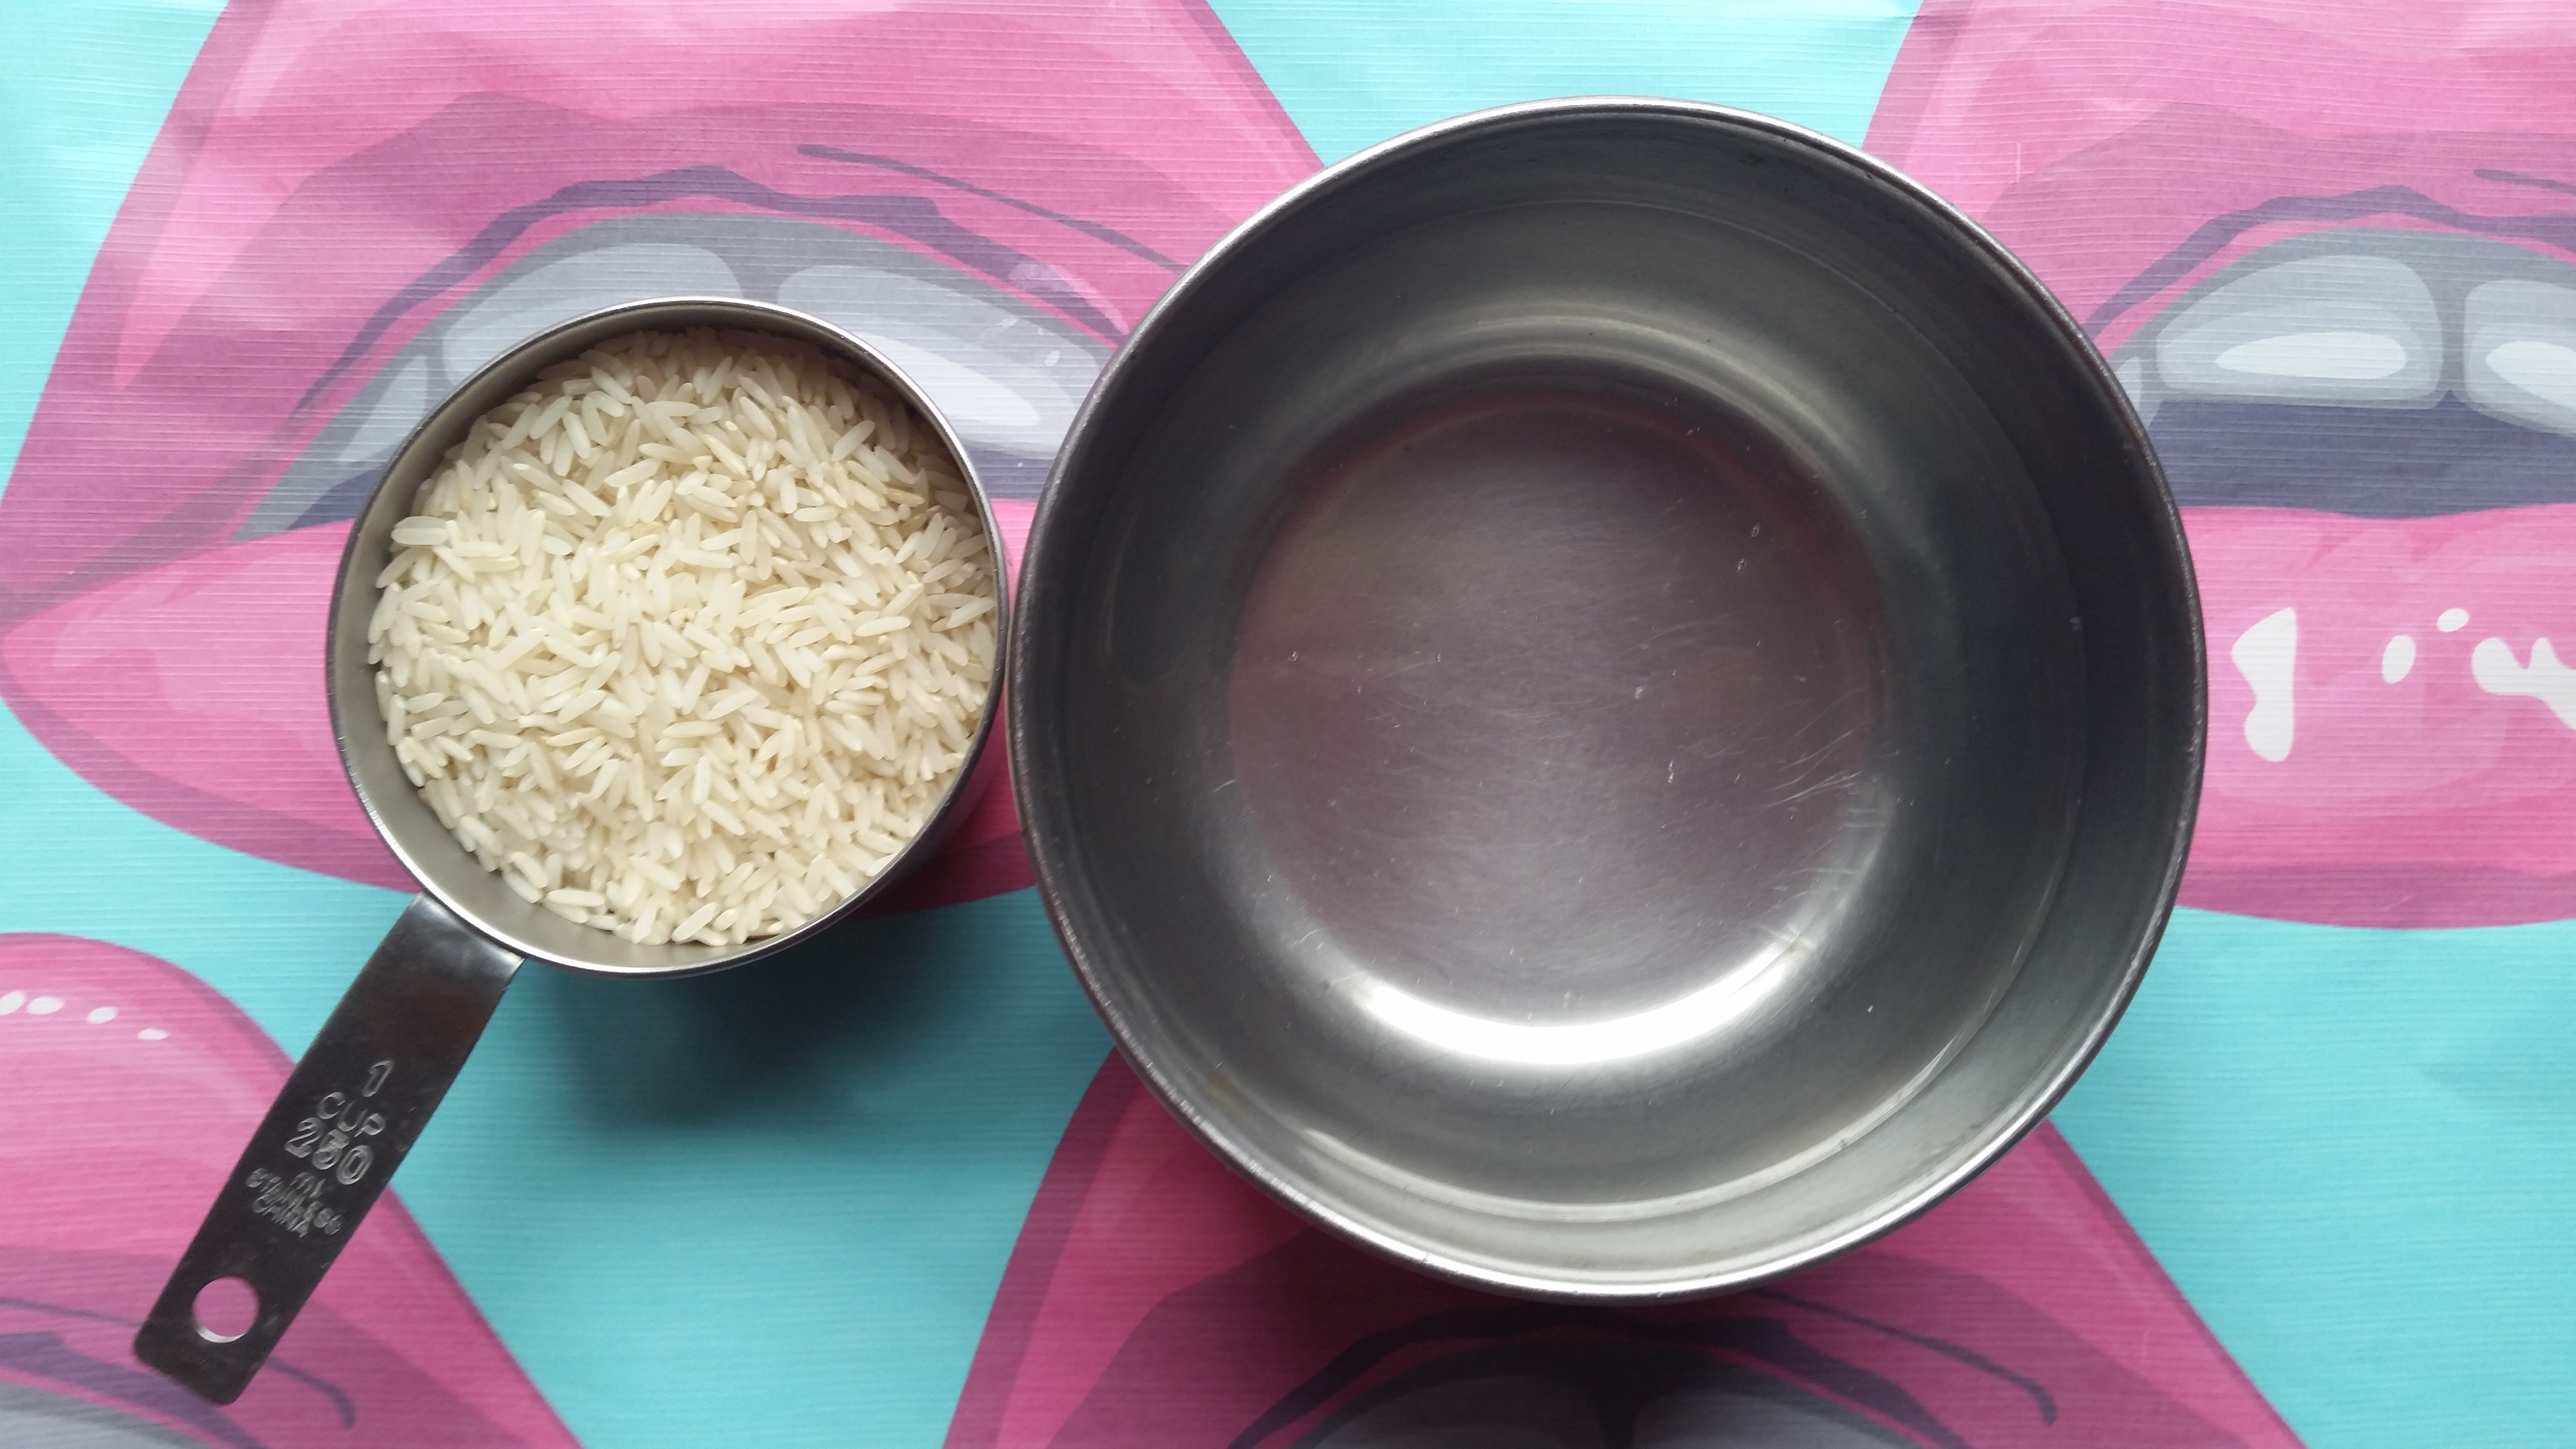 I Washed My Face With Rice Water For A Week & I Wish I'd